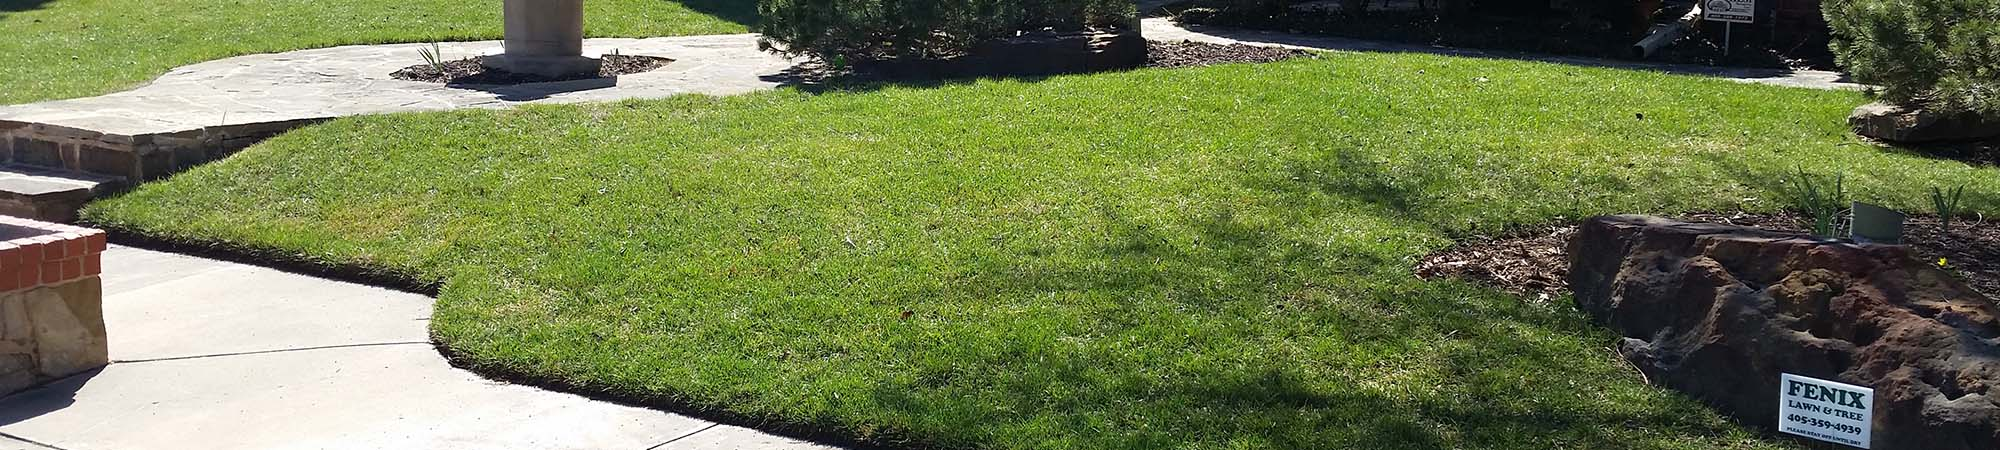 Professional Landscaping Services in Edmond, OK